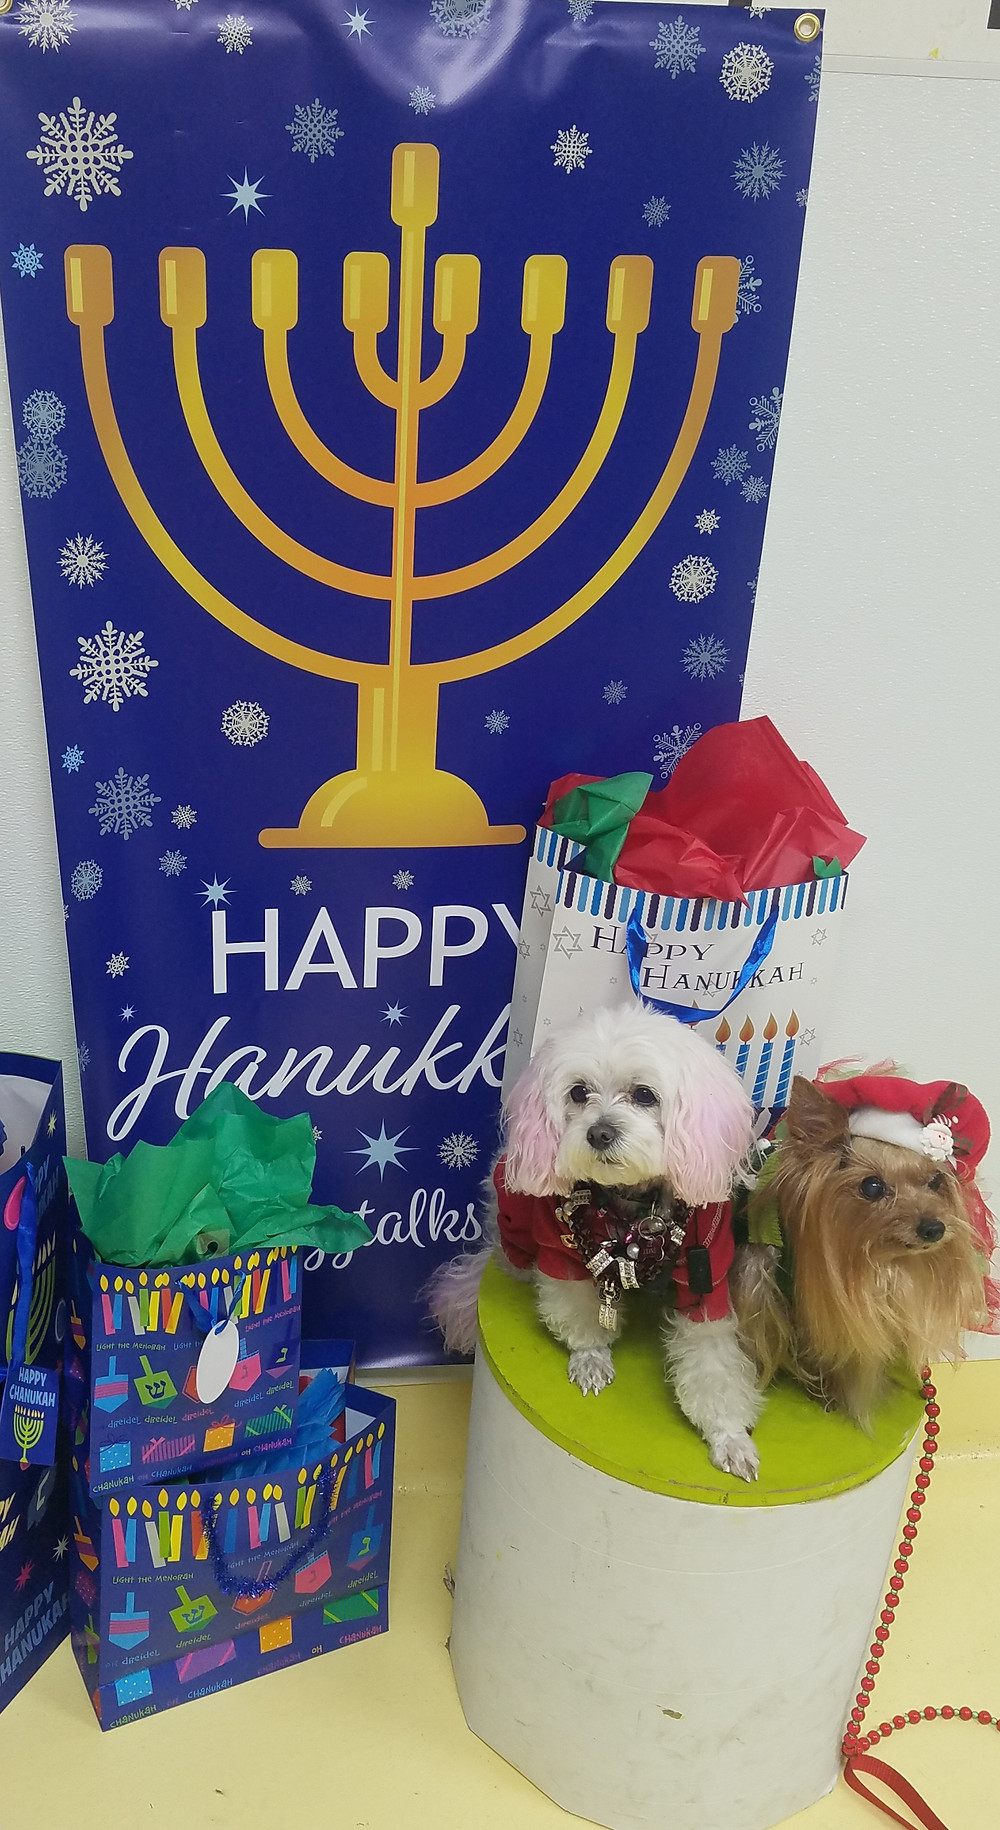 My Hanukkah Photo Op